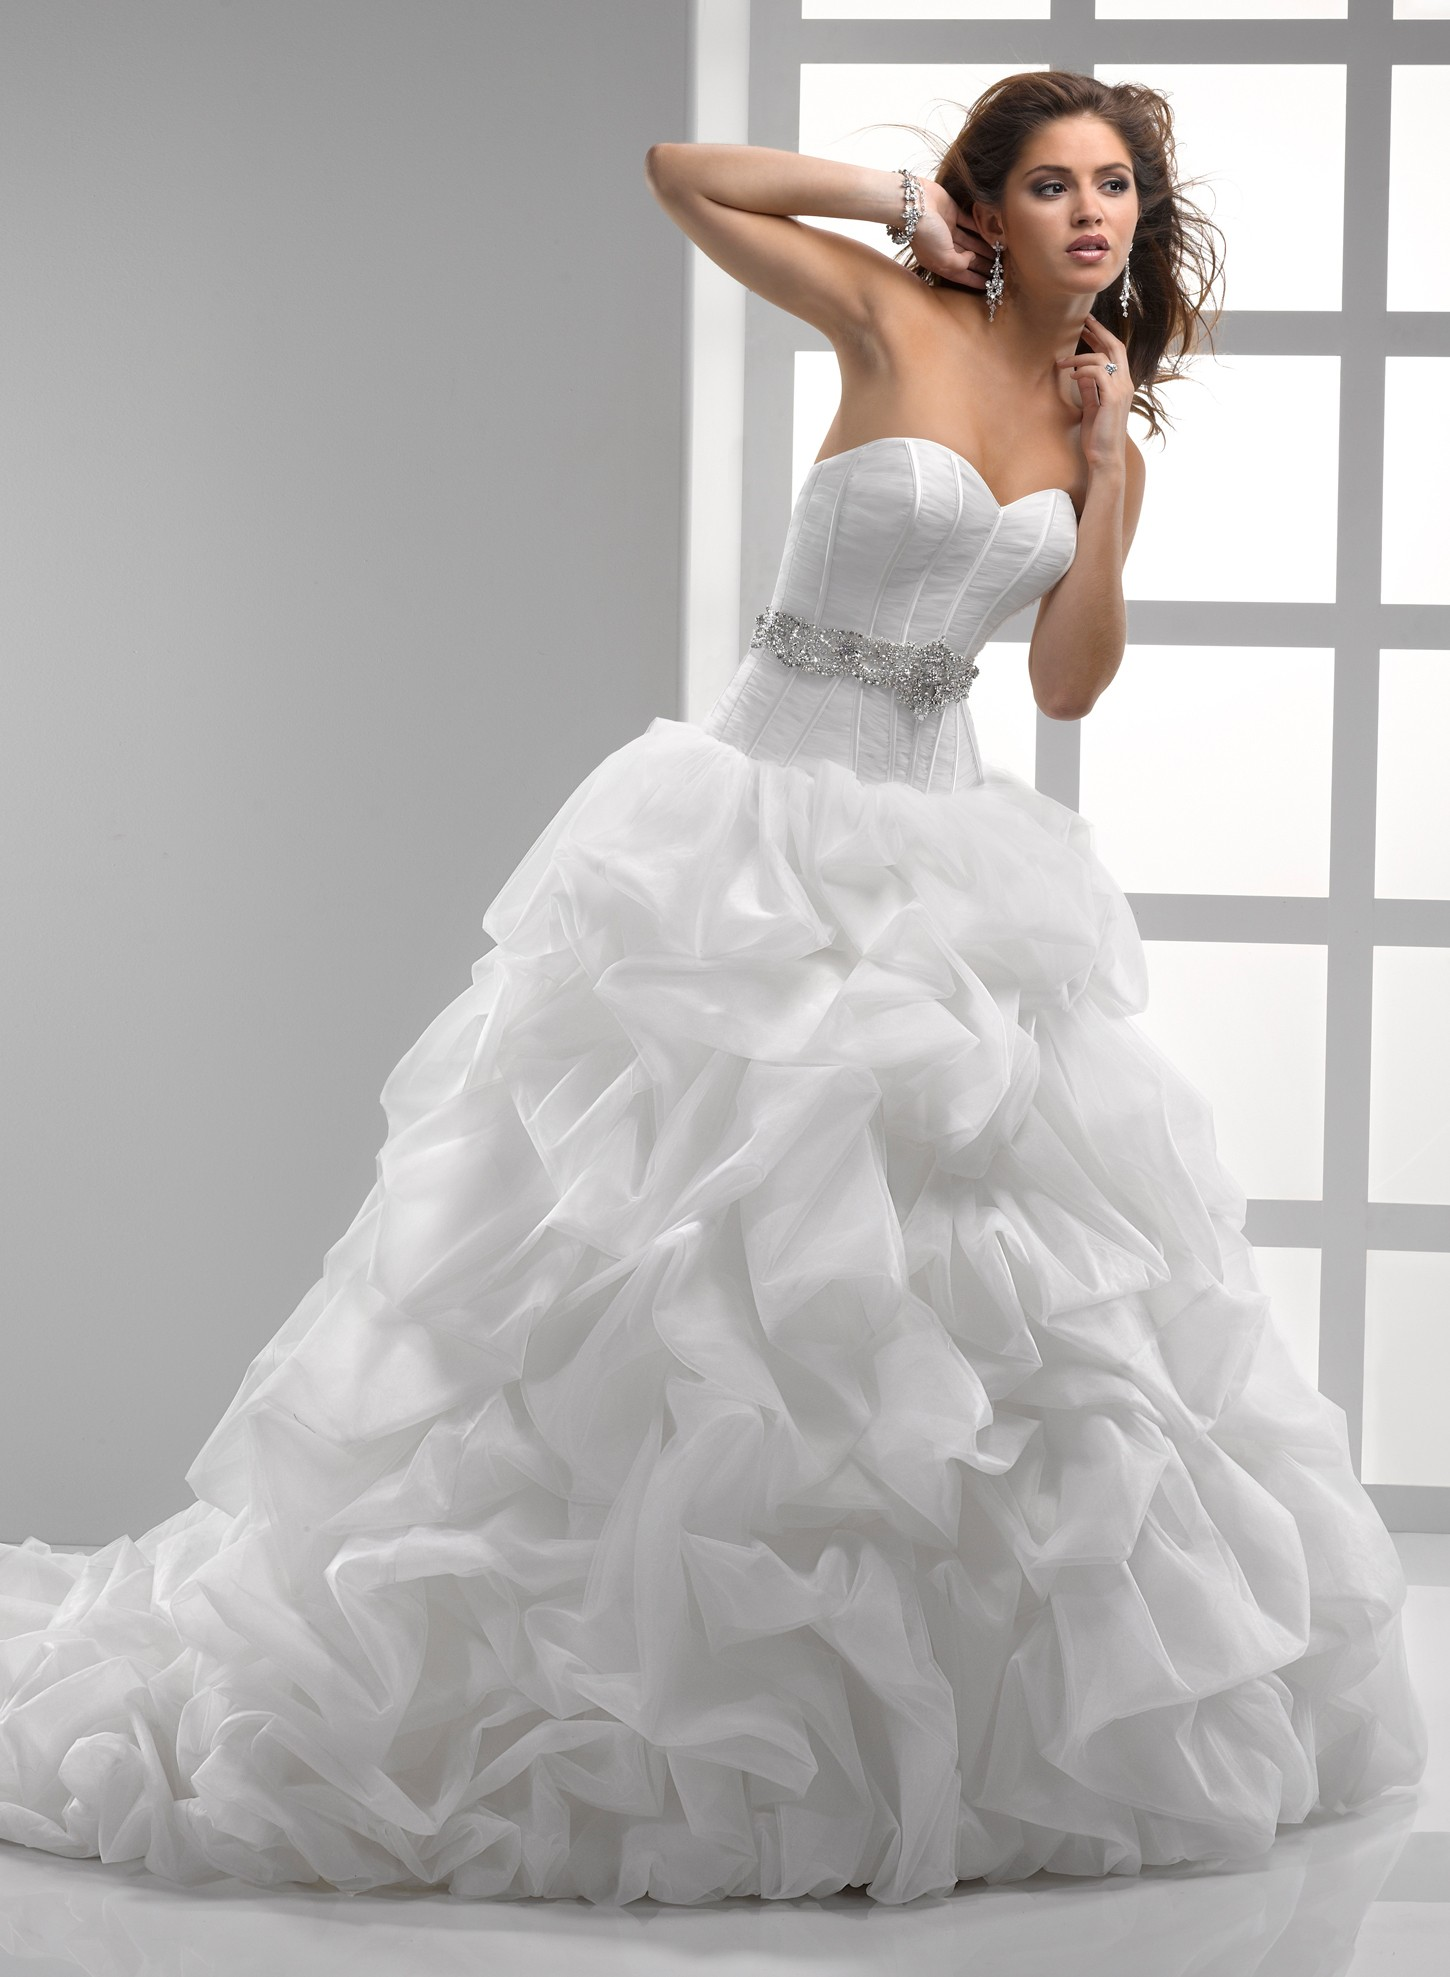 light-tulle-and-chic-organza-ball-gown-sweetheart-wedding-dress